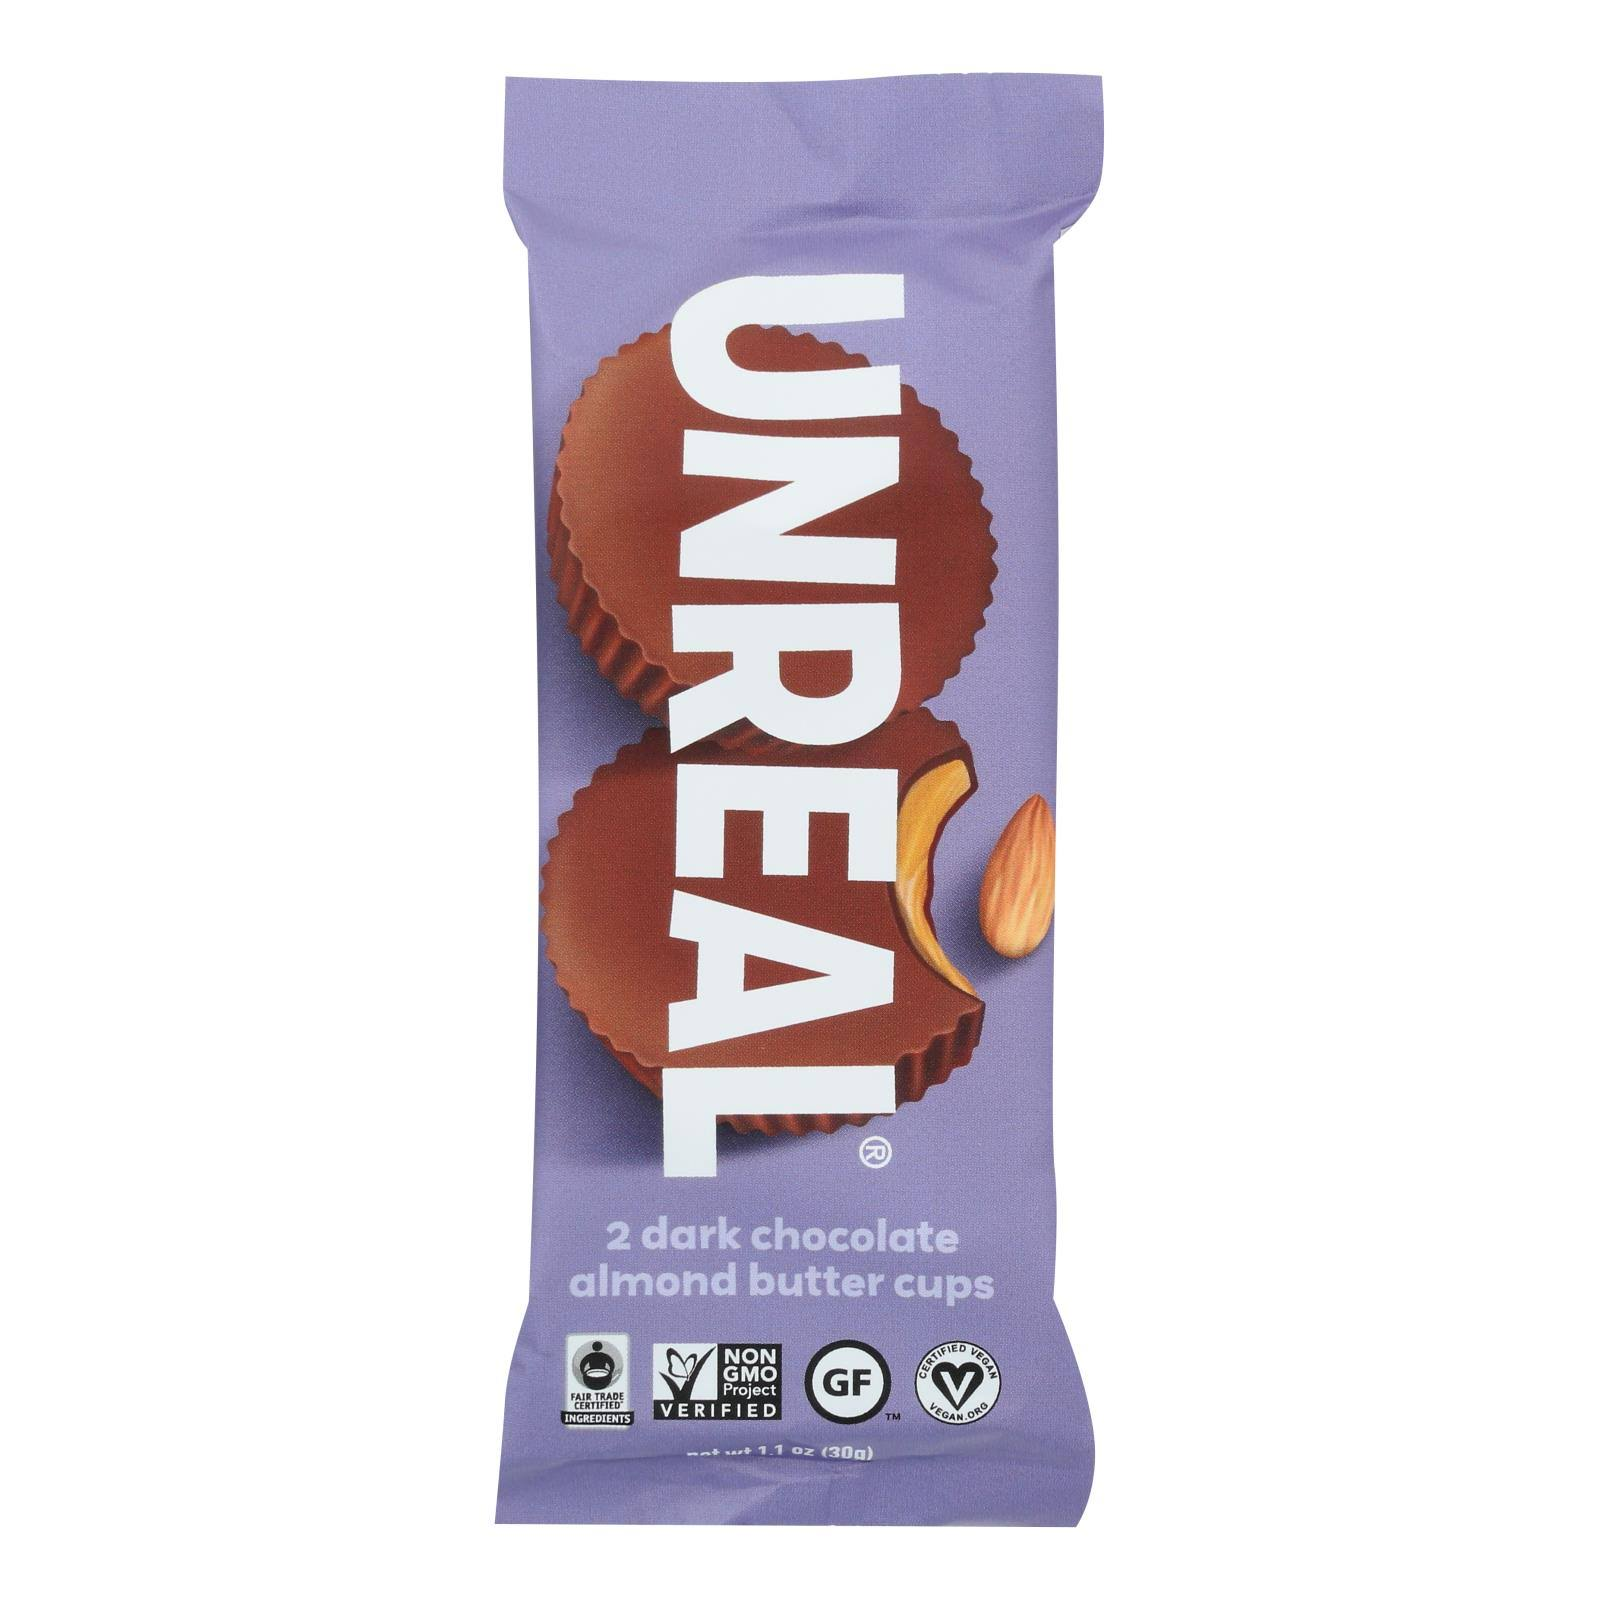 Unreal: Dark Chocolate Almond Butter Cups, 1.1 oz